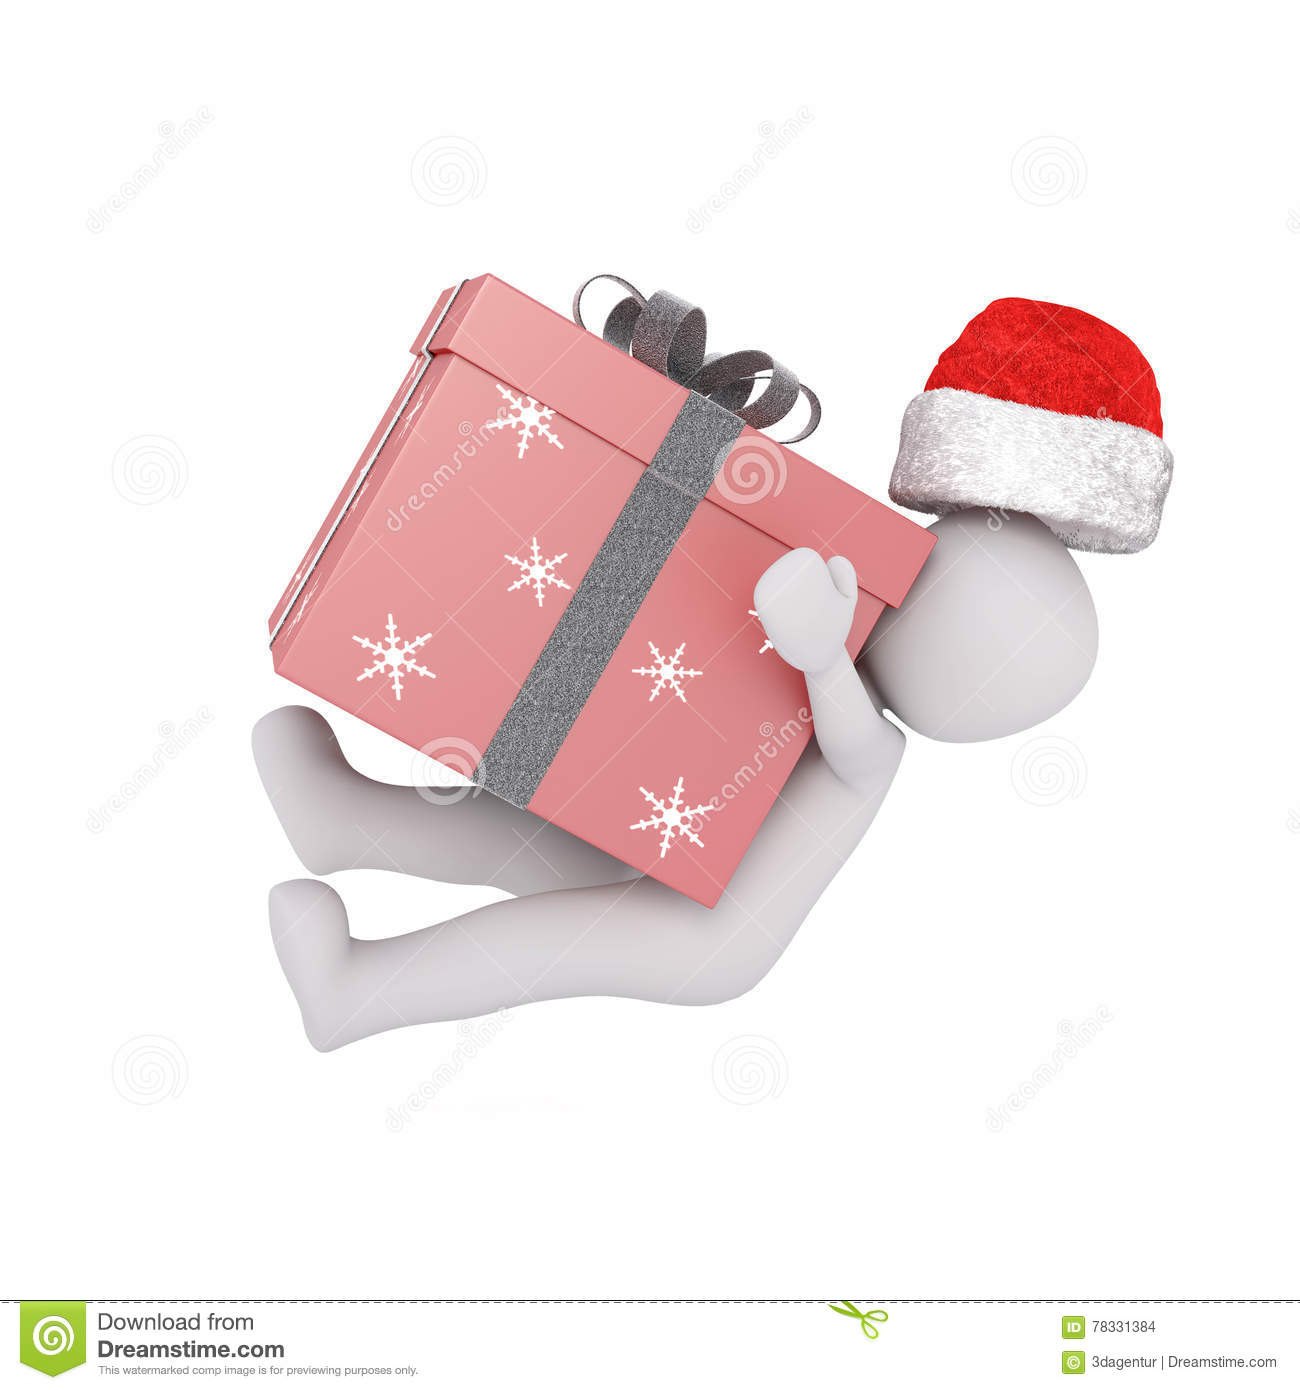 dc78a78ced35f Little 3d man wearing a Santa Claus hat falling under the weight of a large  red festive a Christmas gift isolated on white